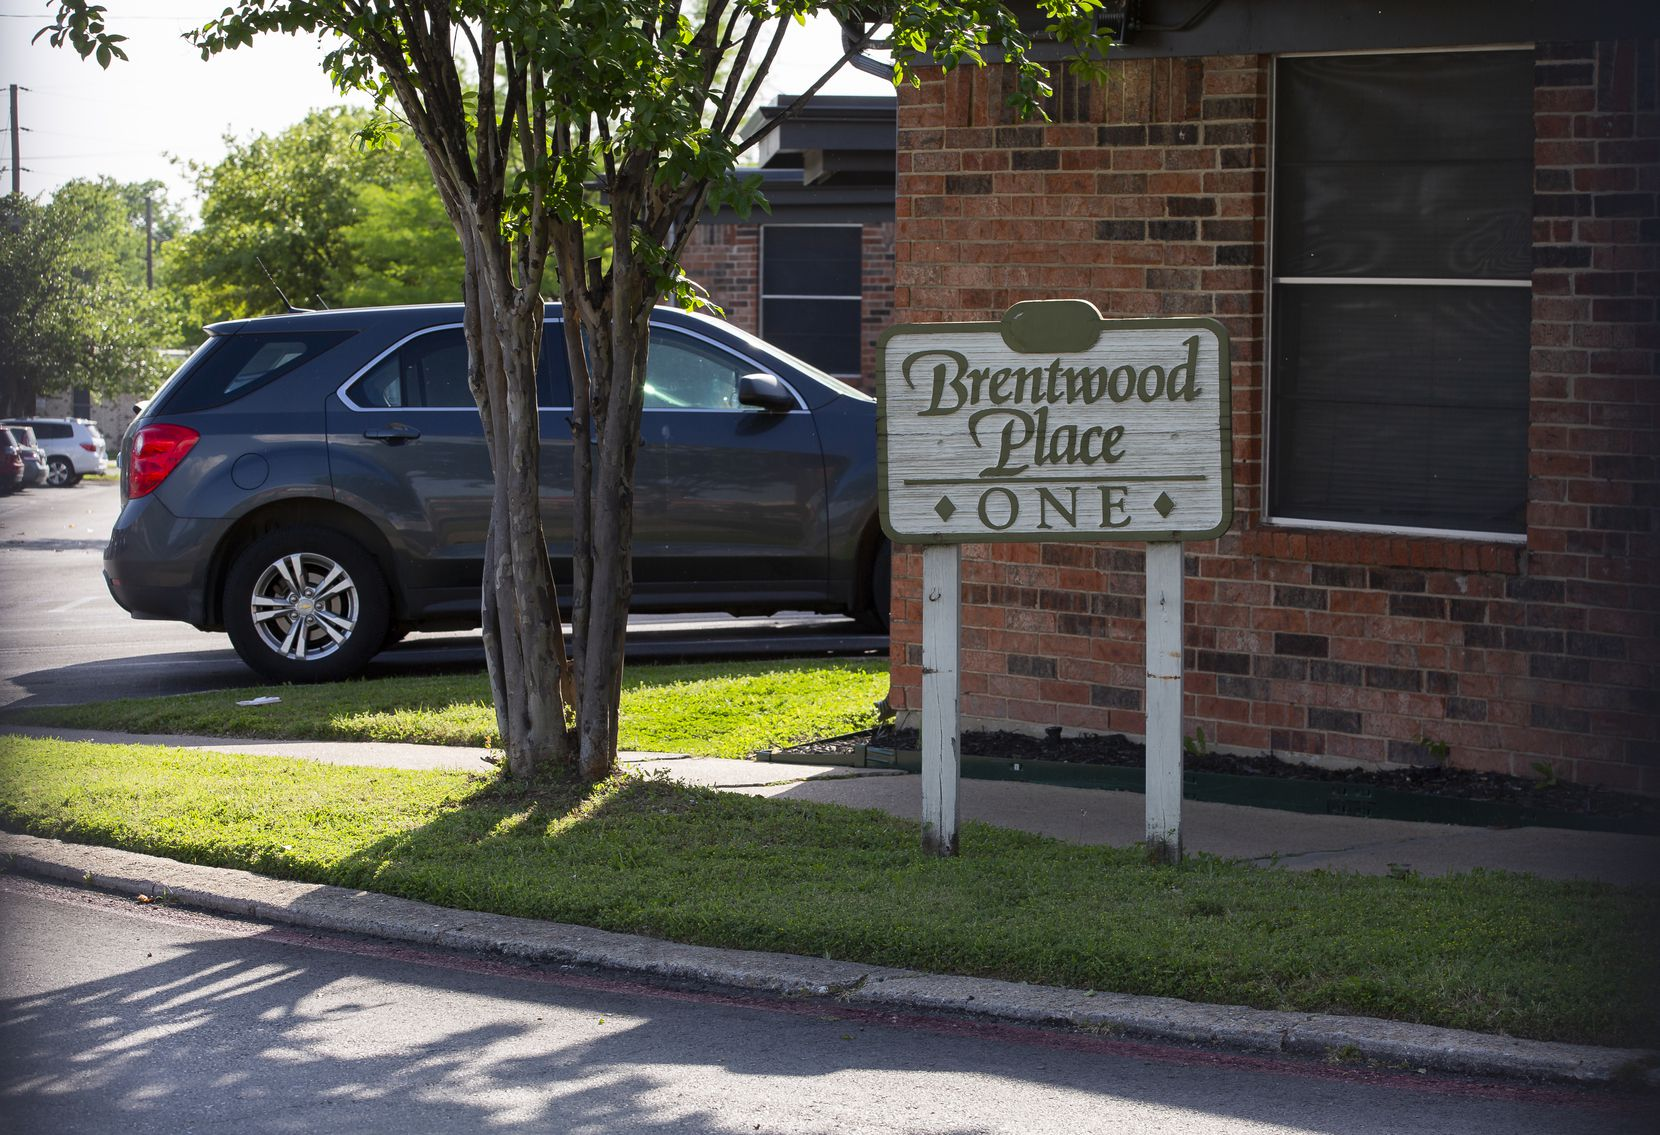 The exterior of Brentwood Nursing Home (Building #1) on April 24, 2020 in Dallas. (Juan Figueroa/ The Dallas Morning News)